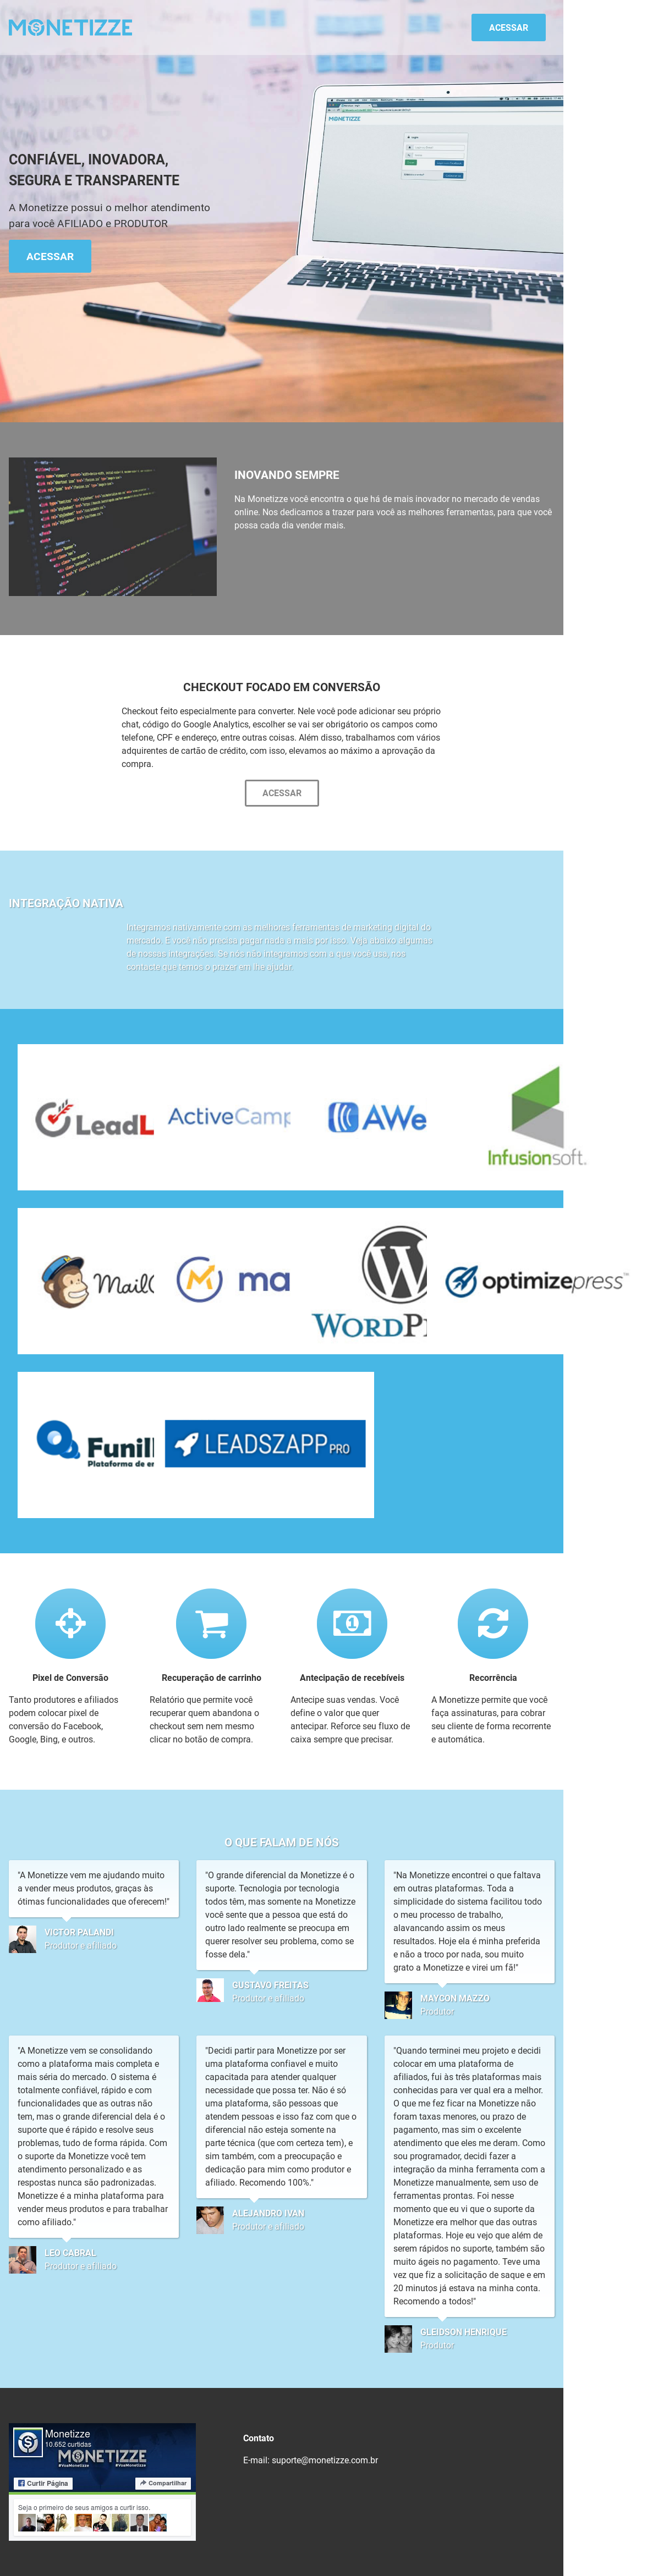 Monetizze Competitors, Revenue and Employees - Owler Company